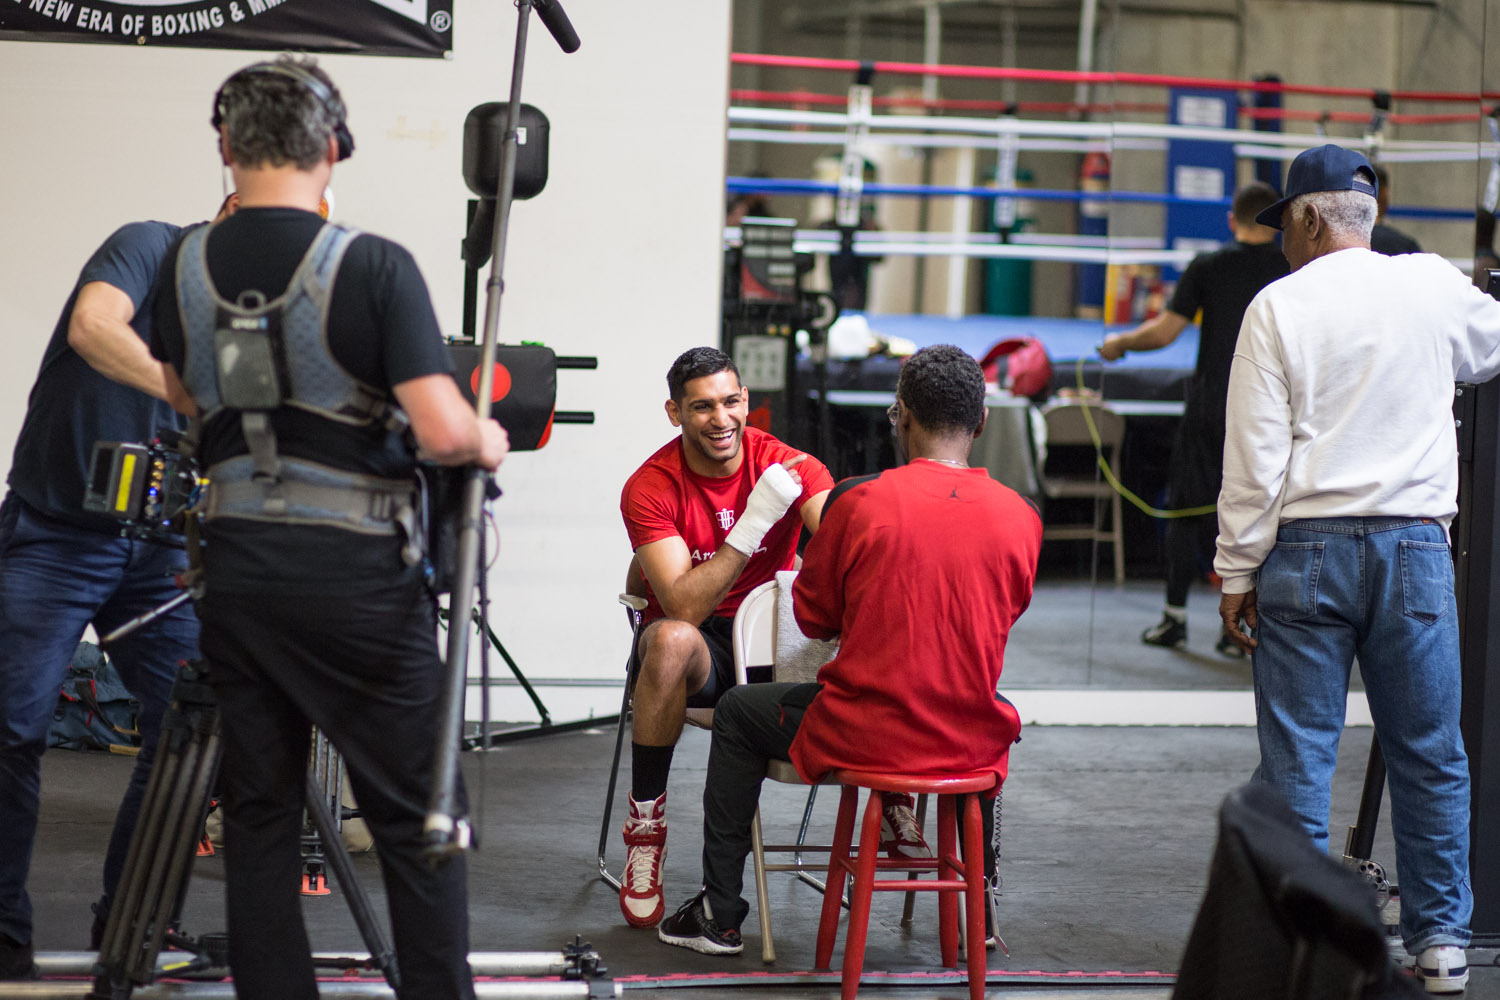 Boxer Amir Khan surrounded by an HBO '24/7' film crew as he trains for a fight against Canelo Alvarez. April 2016.